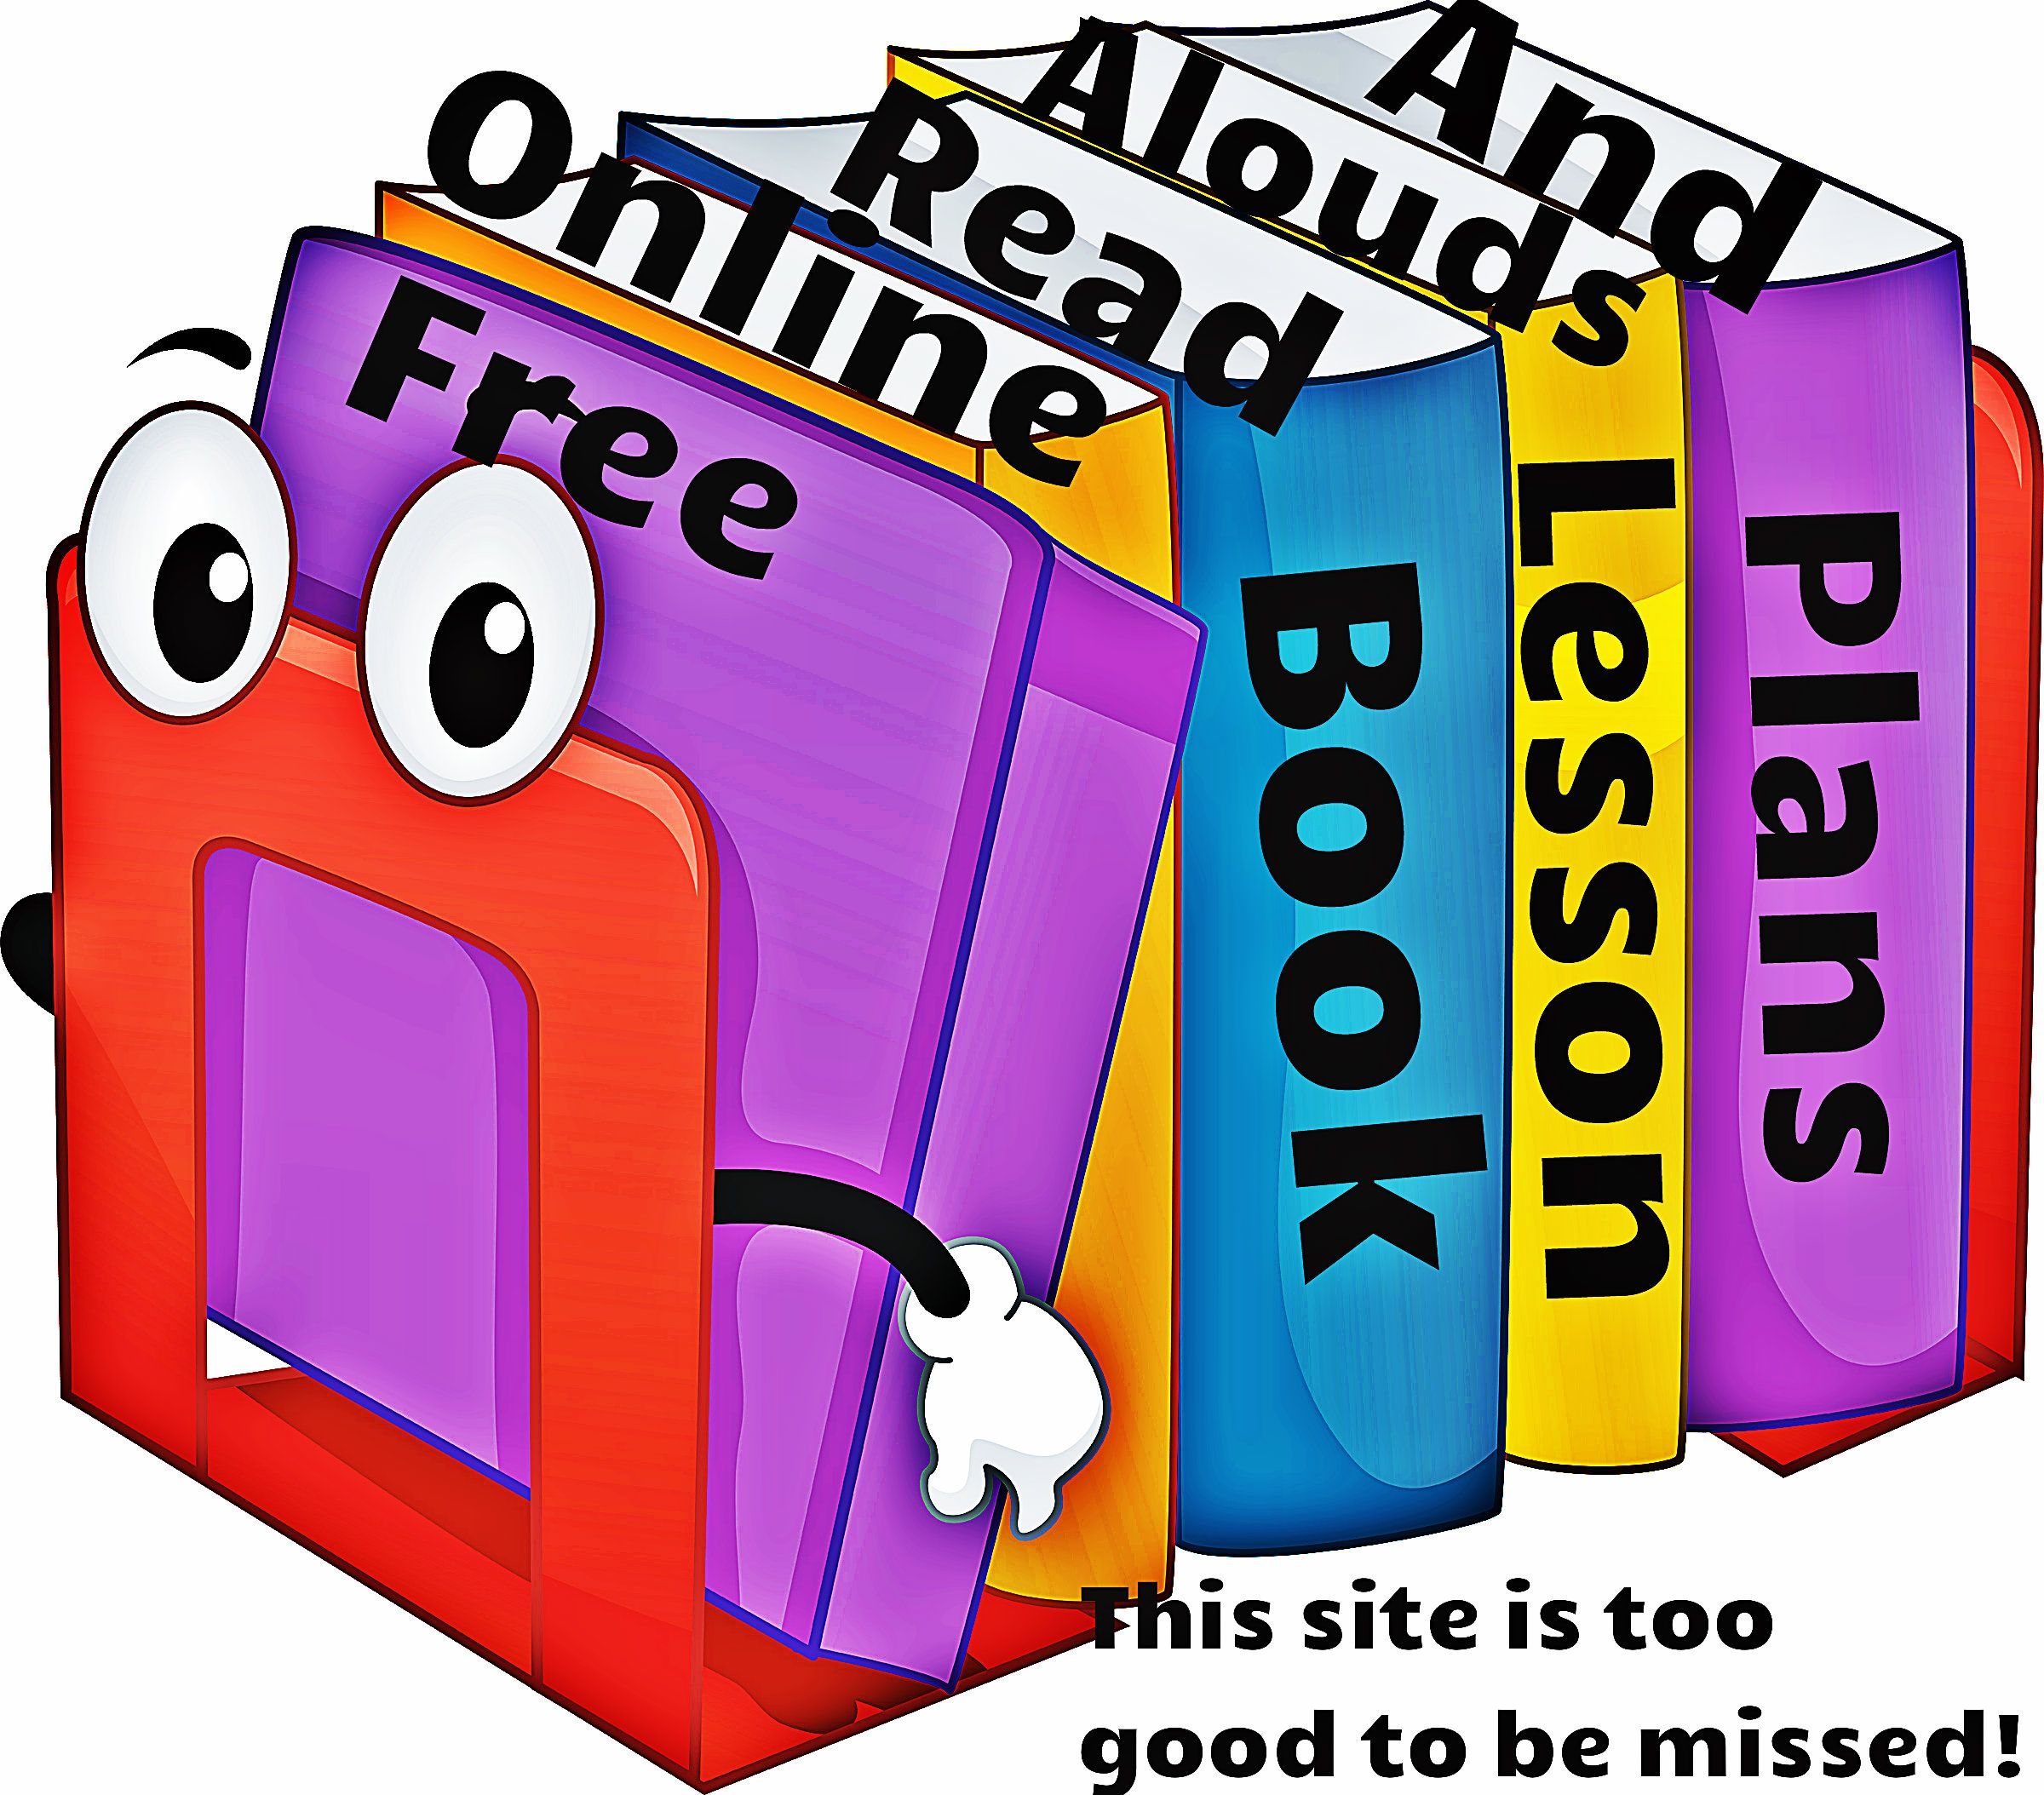 Free site featuring online read alouds of children's